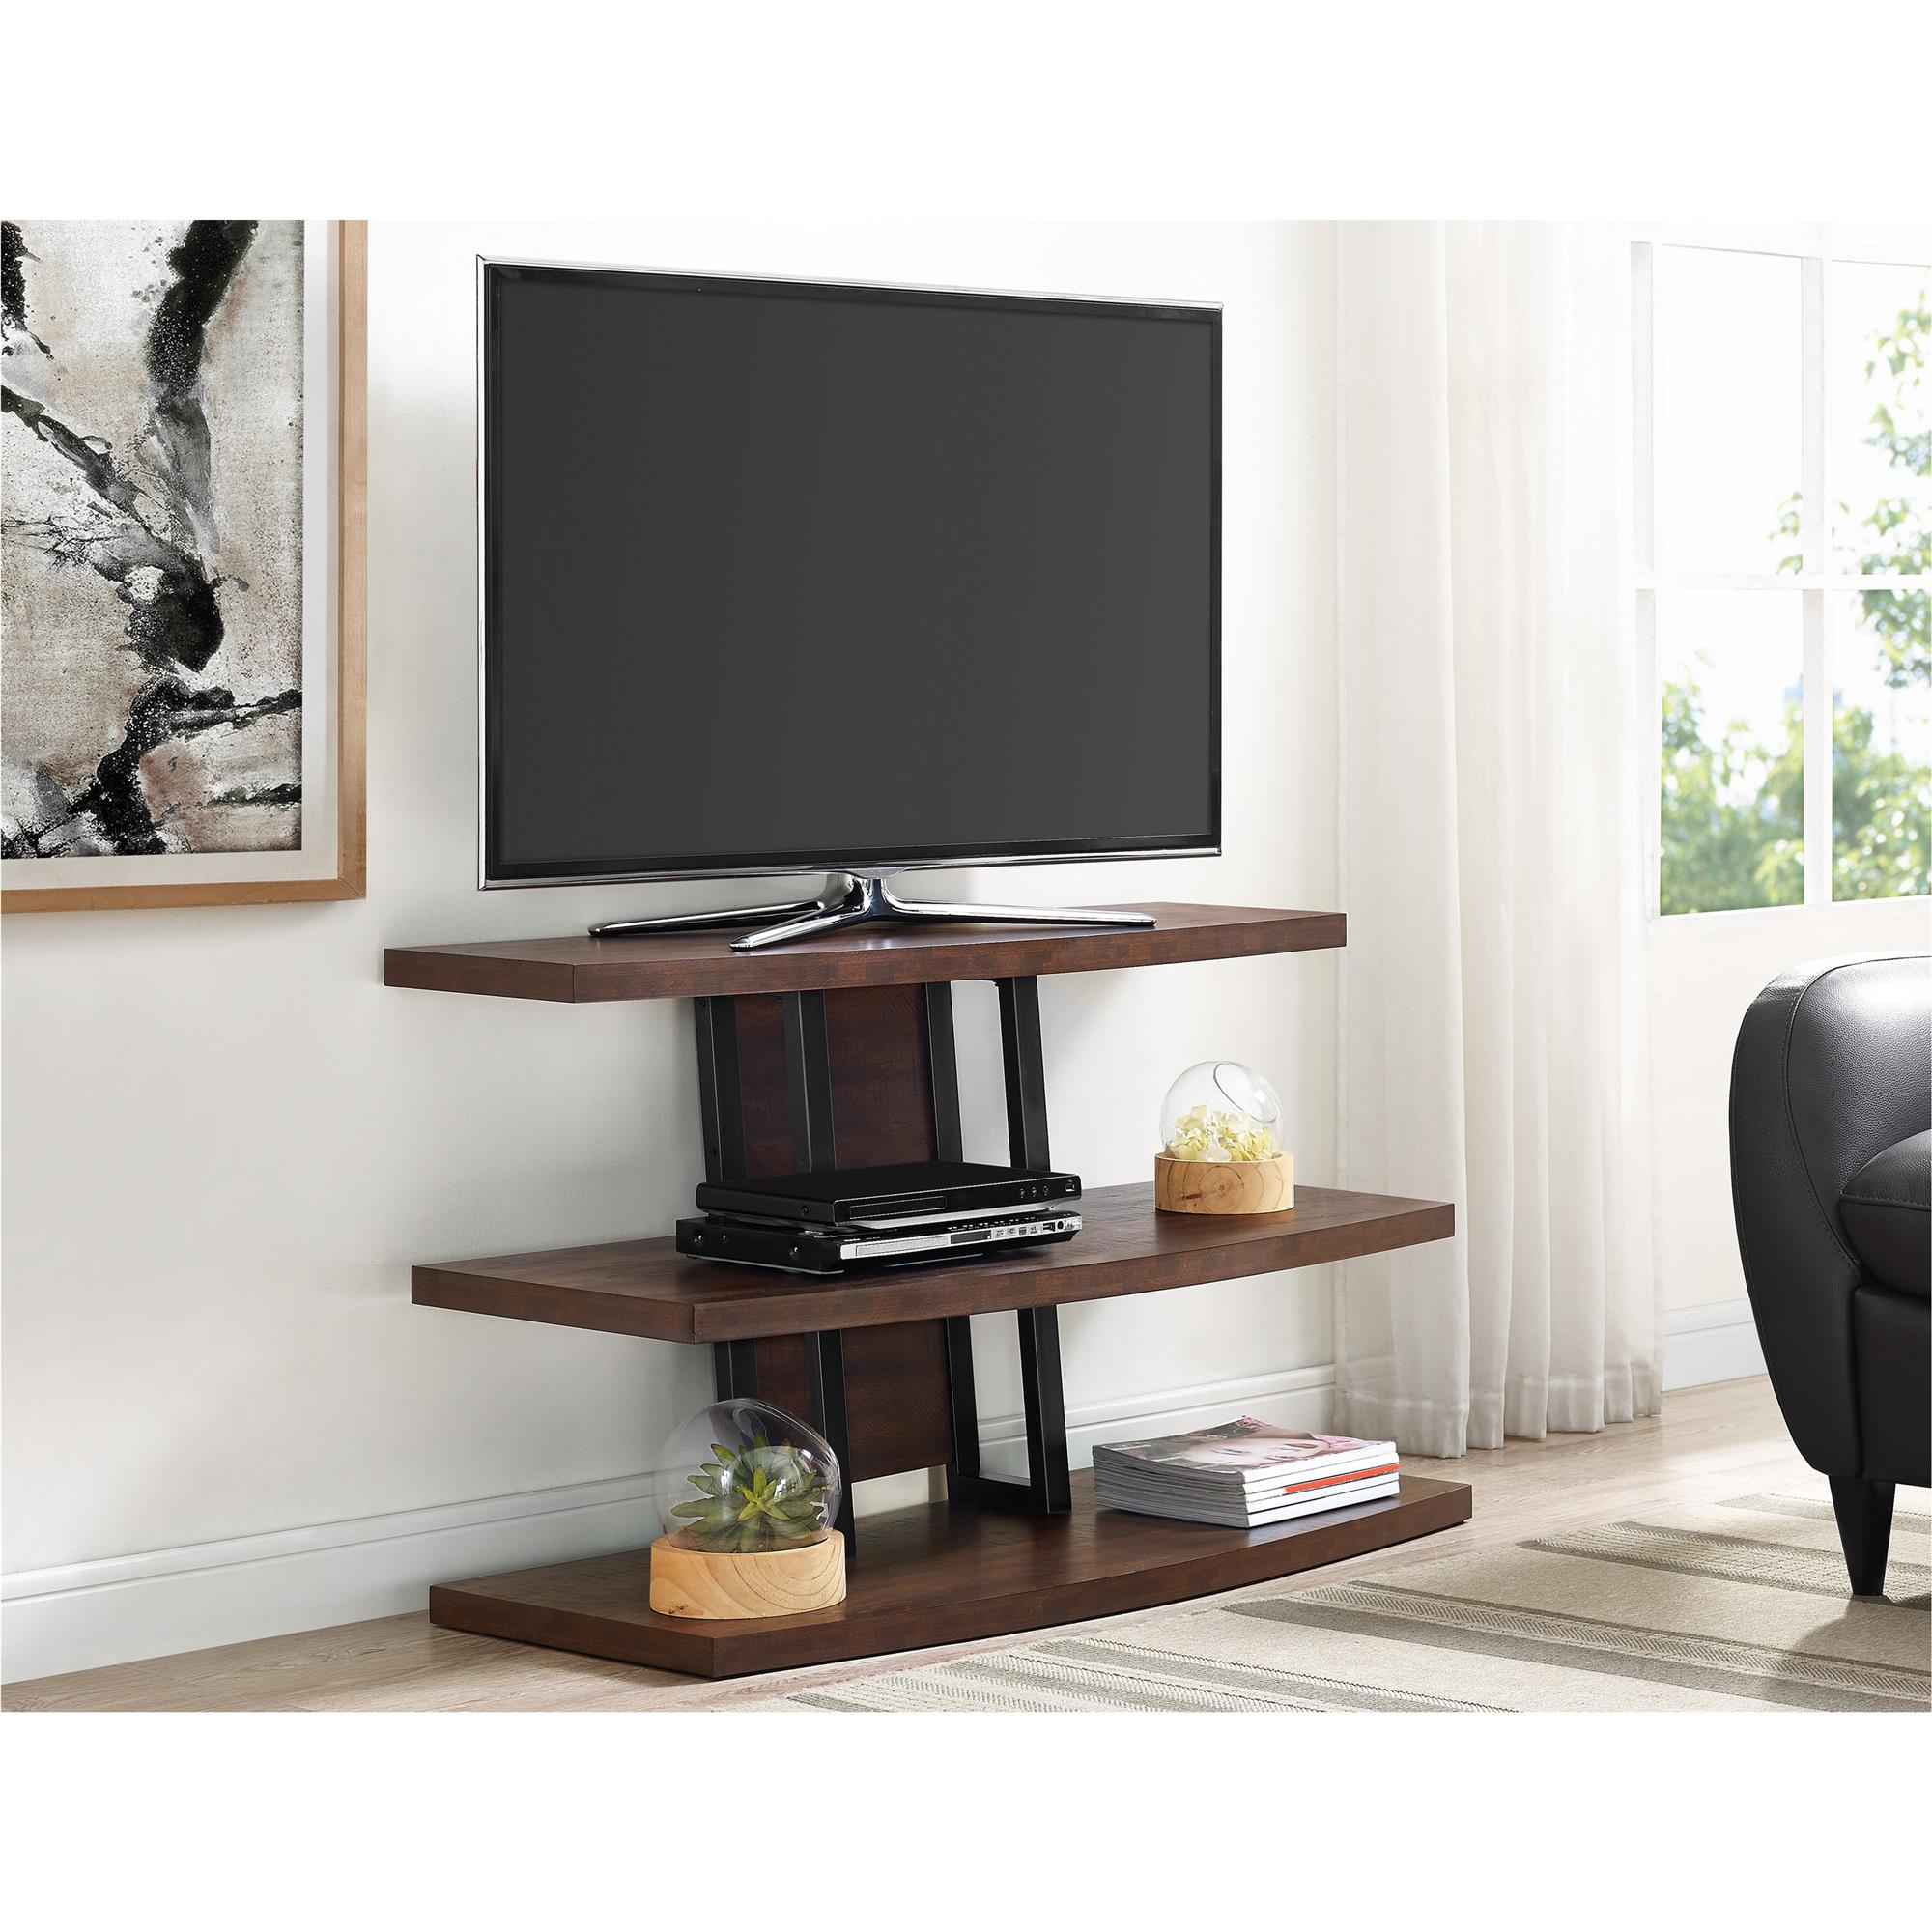 """Ameriwood Home Castling Tv Stand For Tvs Up To 55"""", Espresso With Forma 65 Inch Tv Stands (View 7 of 30)"""